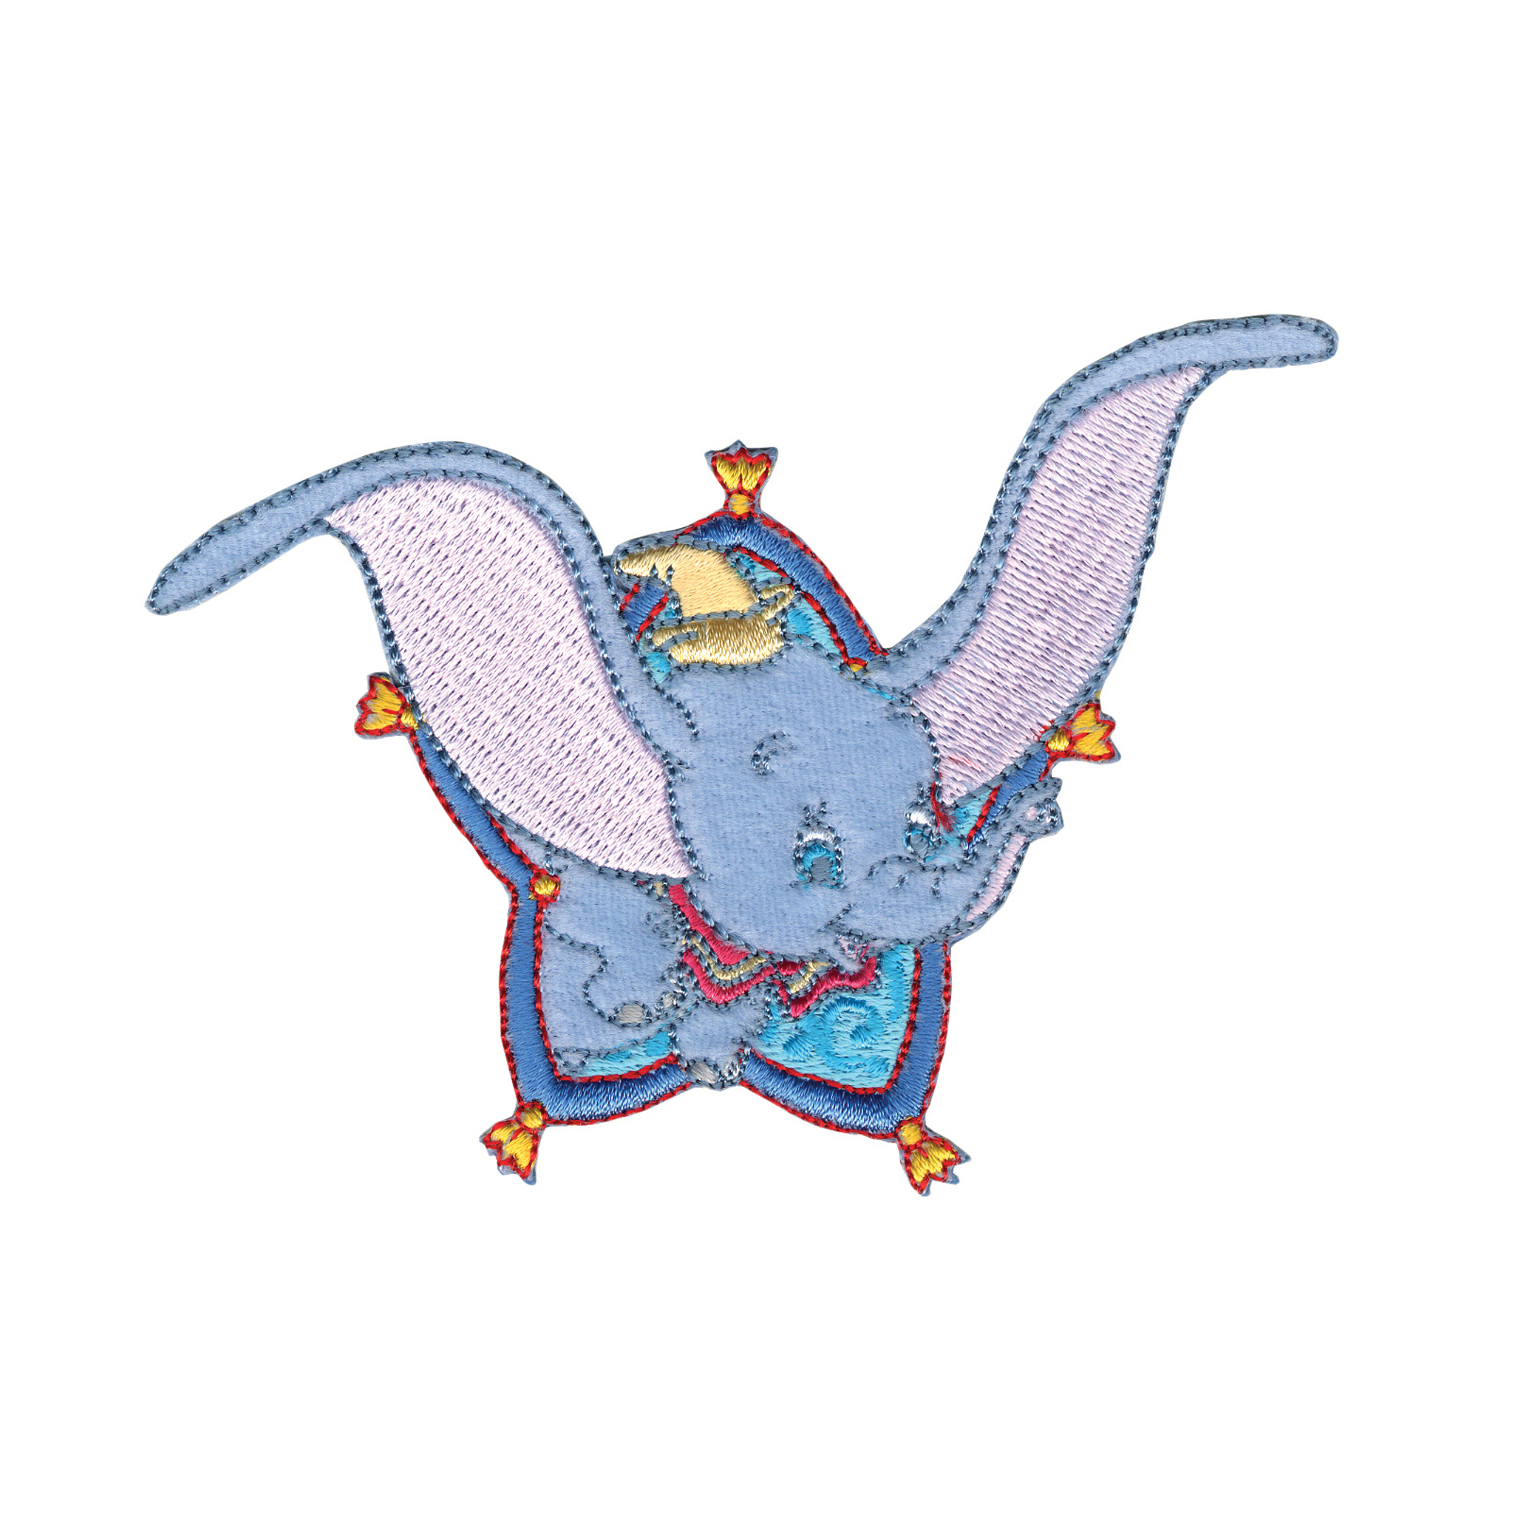 Disney Dumbo Iron On Applique Dumbo Flying by Notions Marketing in USA